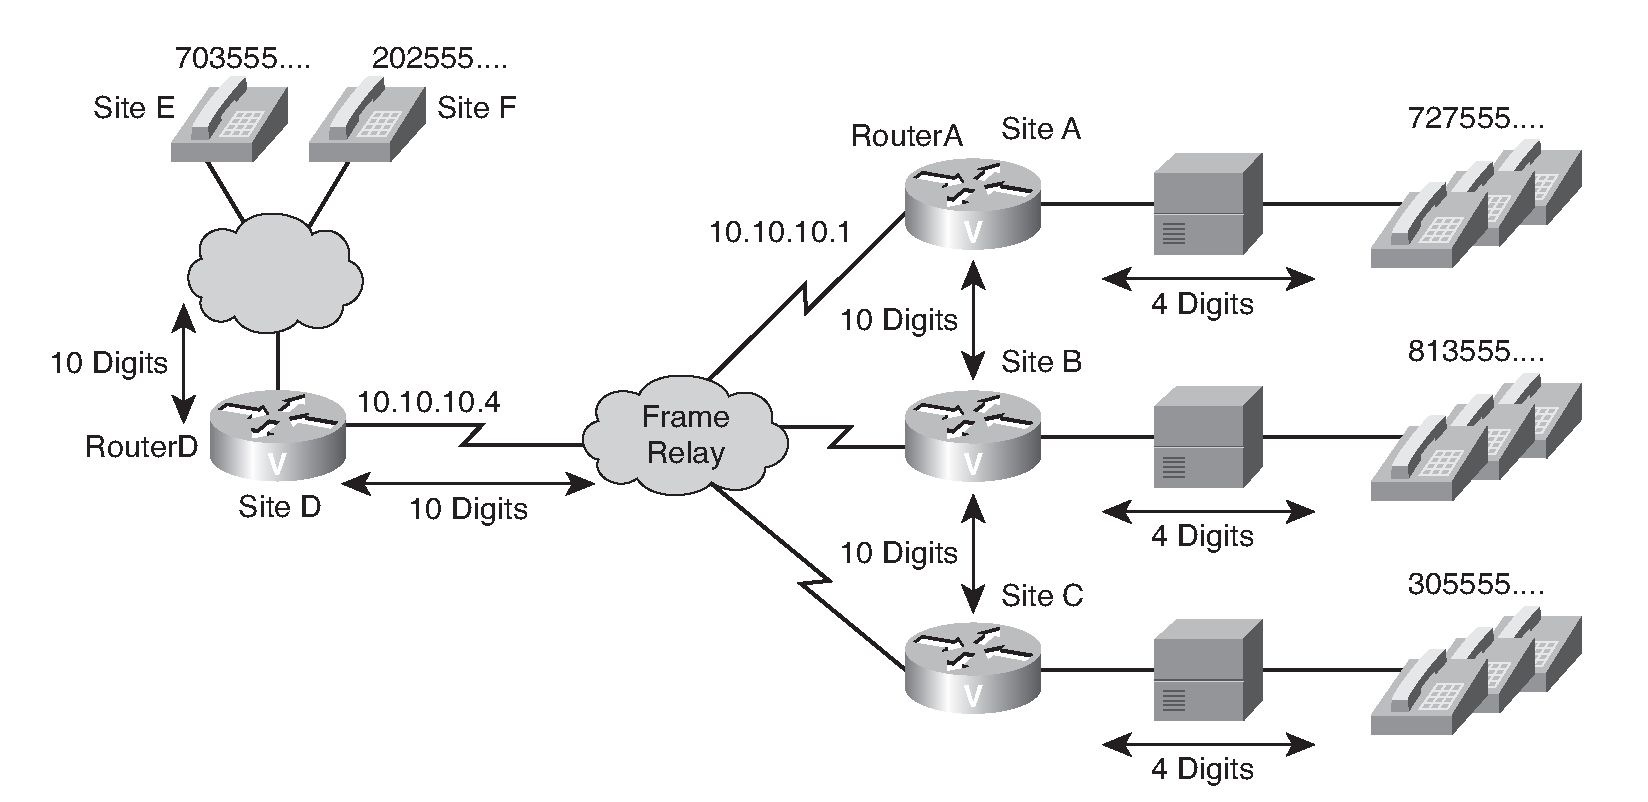 Numbering plan fundamentals identifying dial plan characteristics enhancing and extending an existing dial plan to accommodate voip ccuart Images